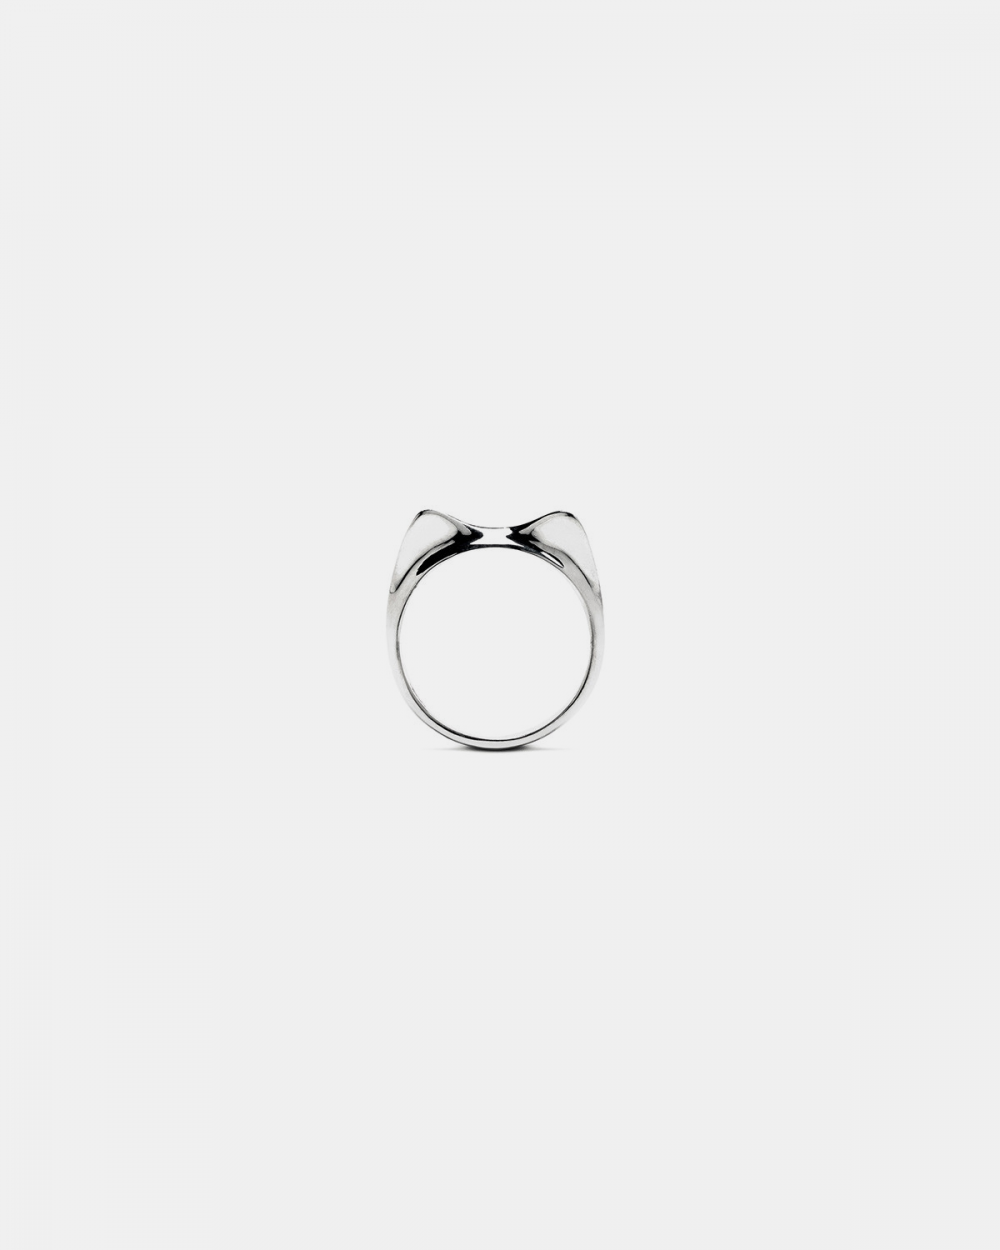 Cat Fever KITTEN FINE RING / POLISHED SILVER NOVE25